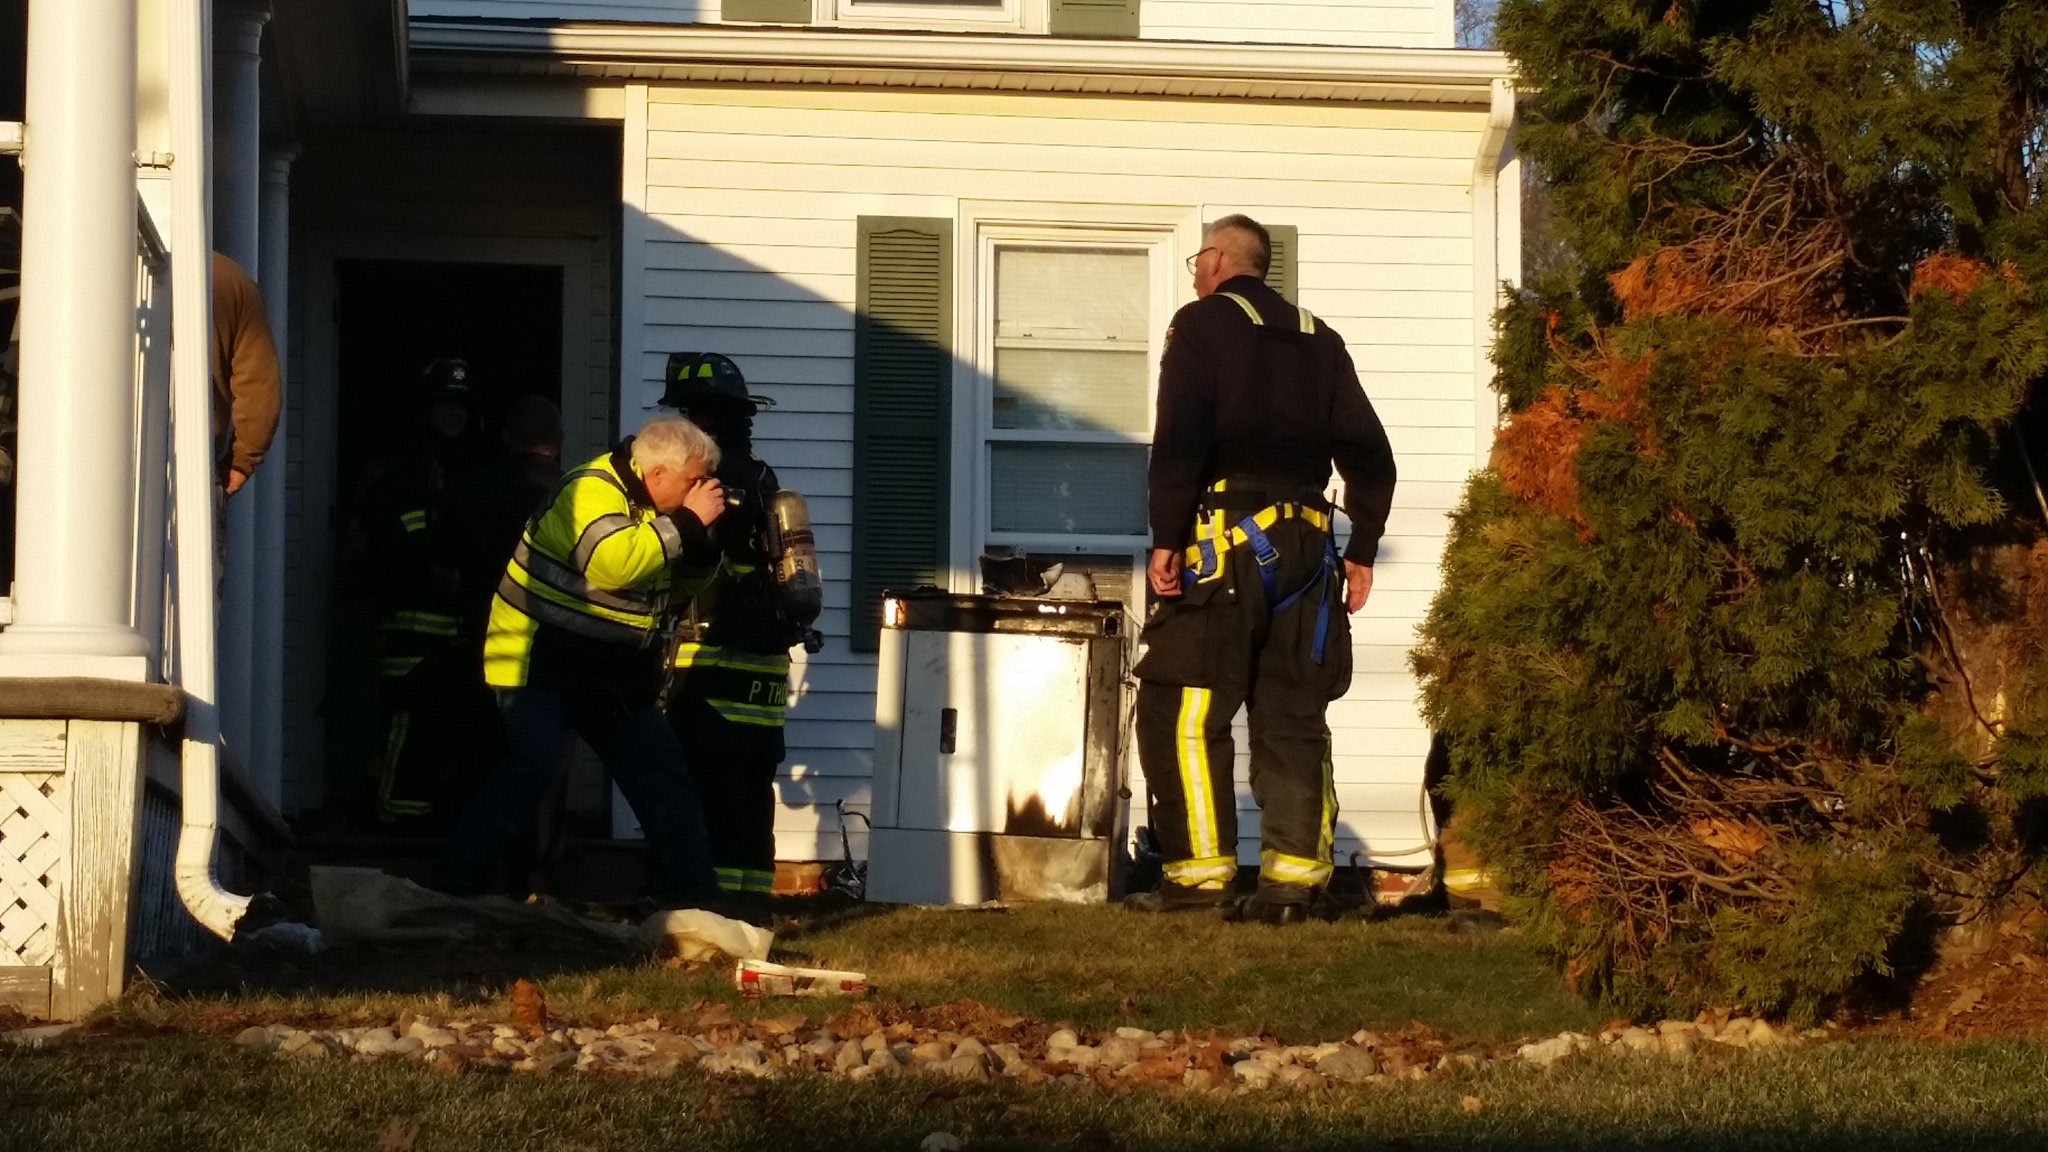 Emergency crews extinguished a fire at a Cheshire home on Thursday, Dec. 22. | Lauren Sievert, Record-Journal